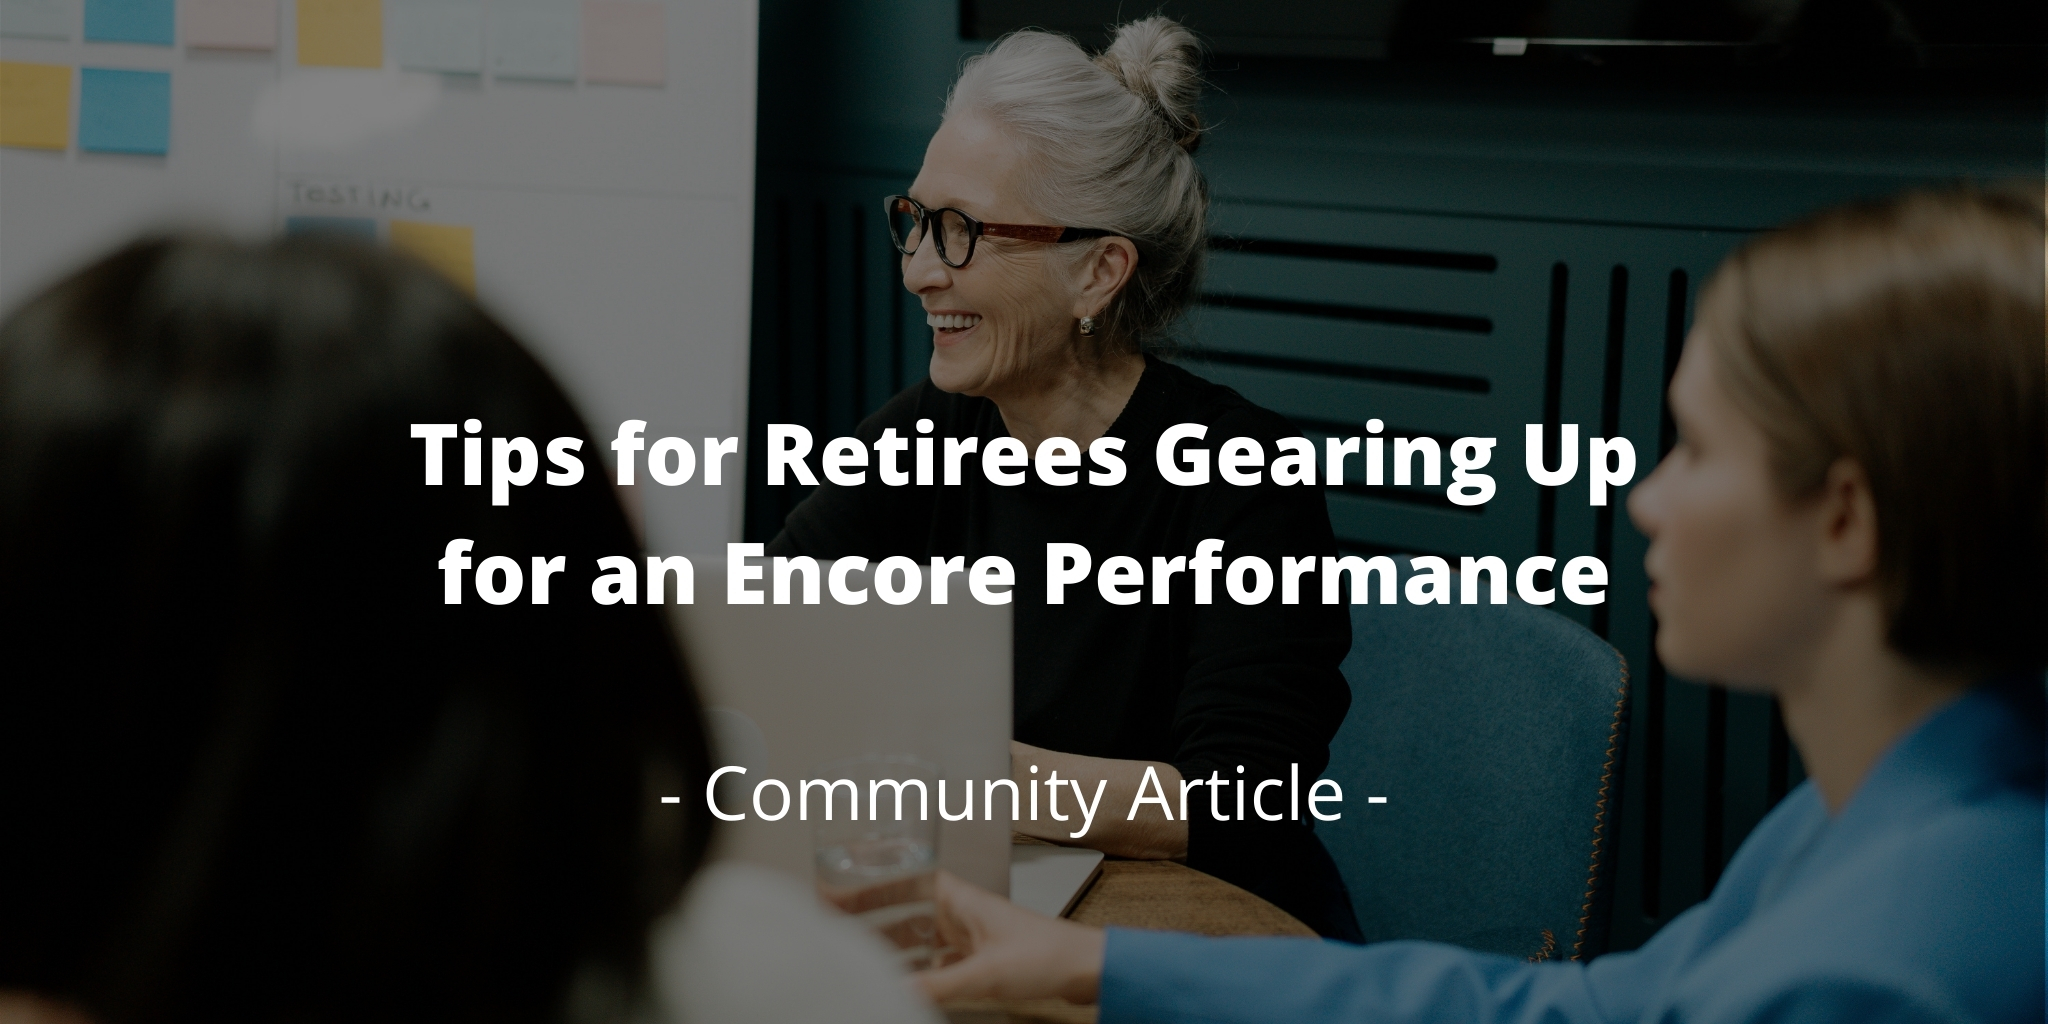 Tips for Retirees Gearing Up for an Encore Performance